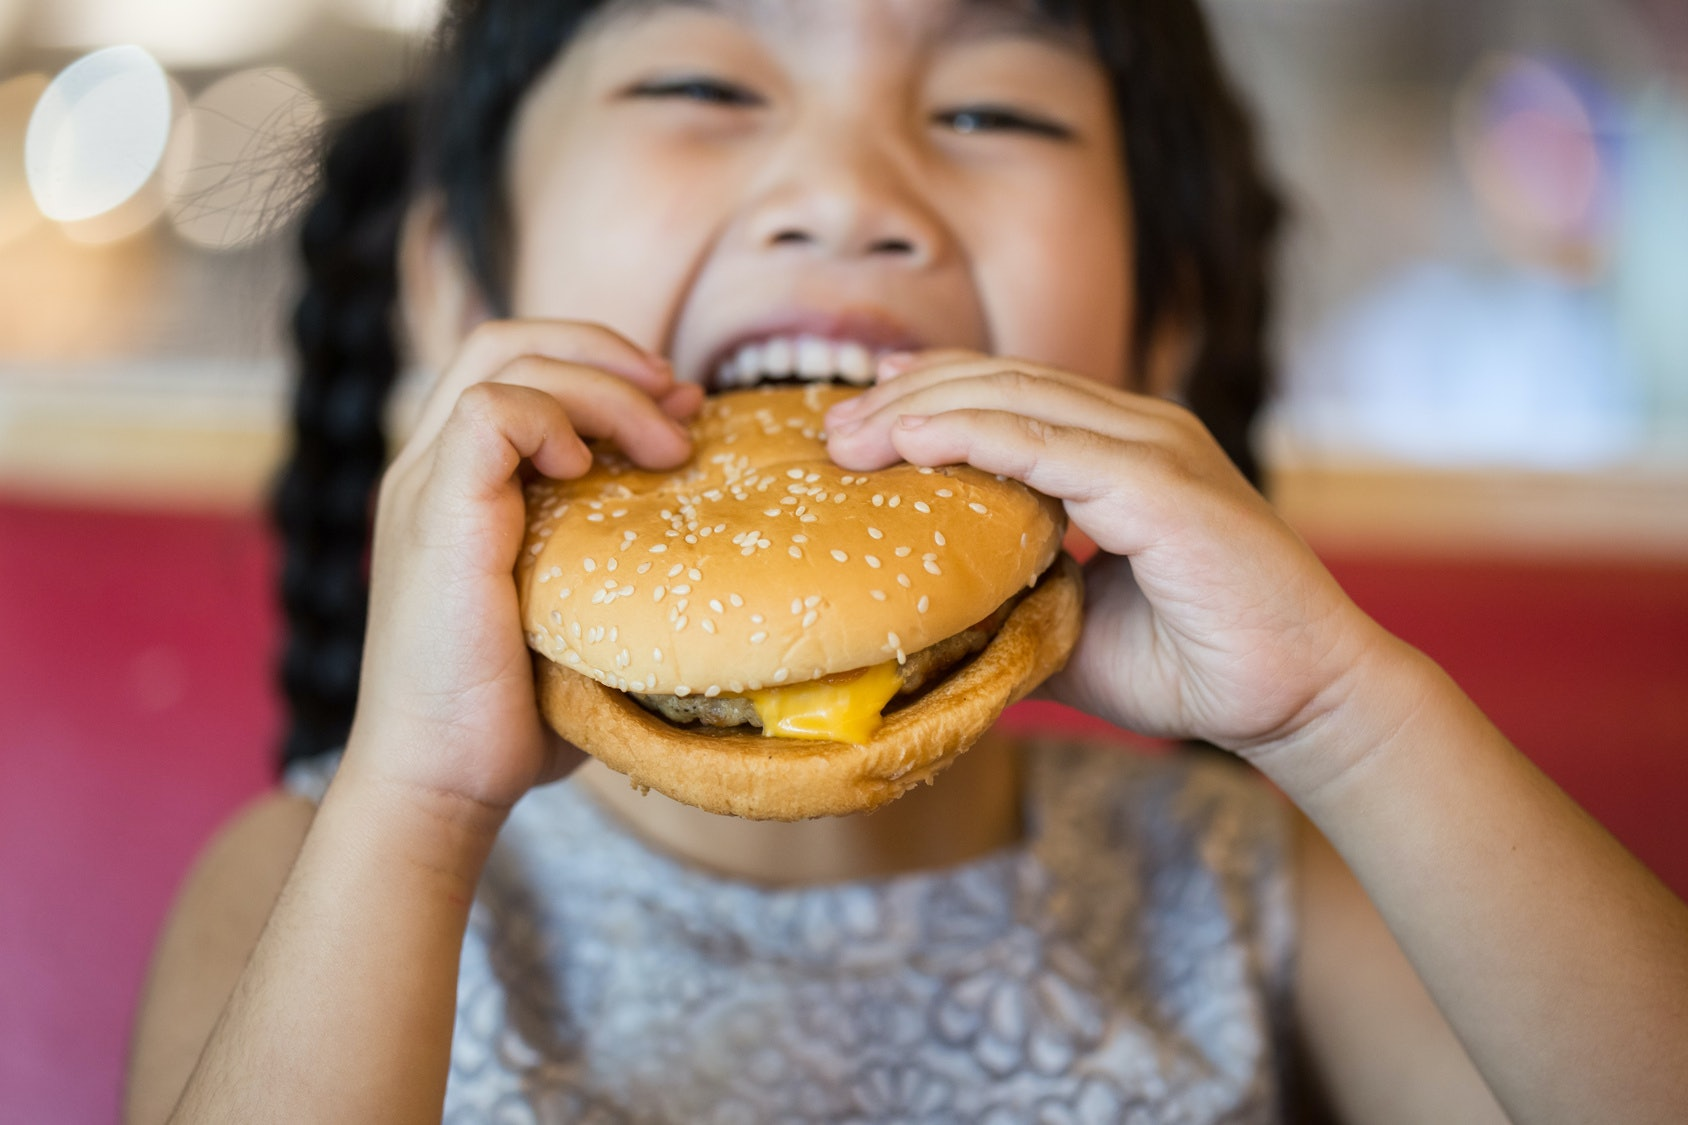 American Kids Are Eating More Fast Food Than Before